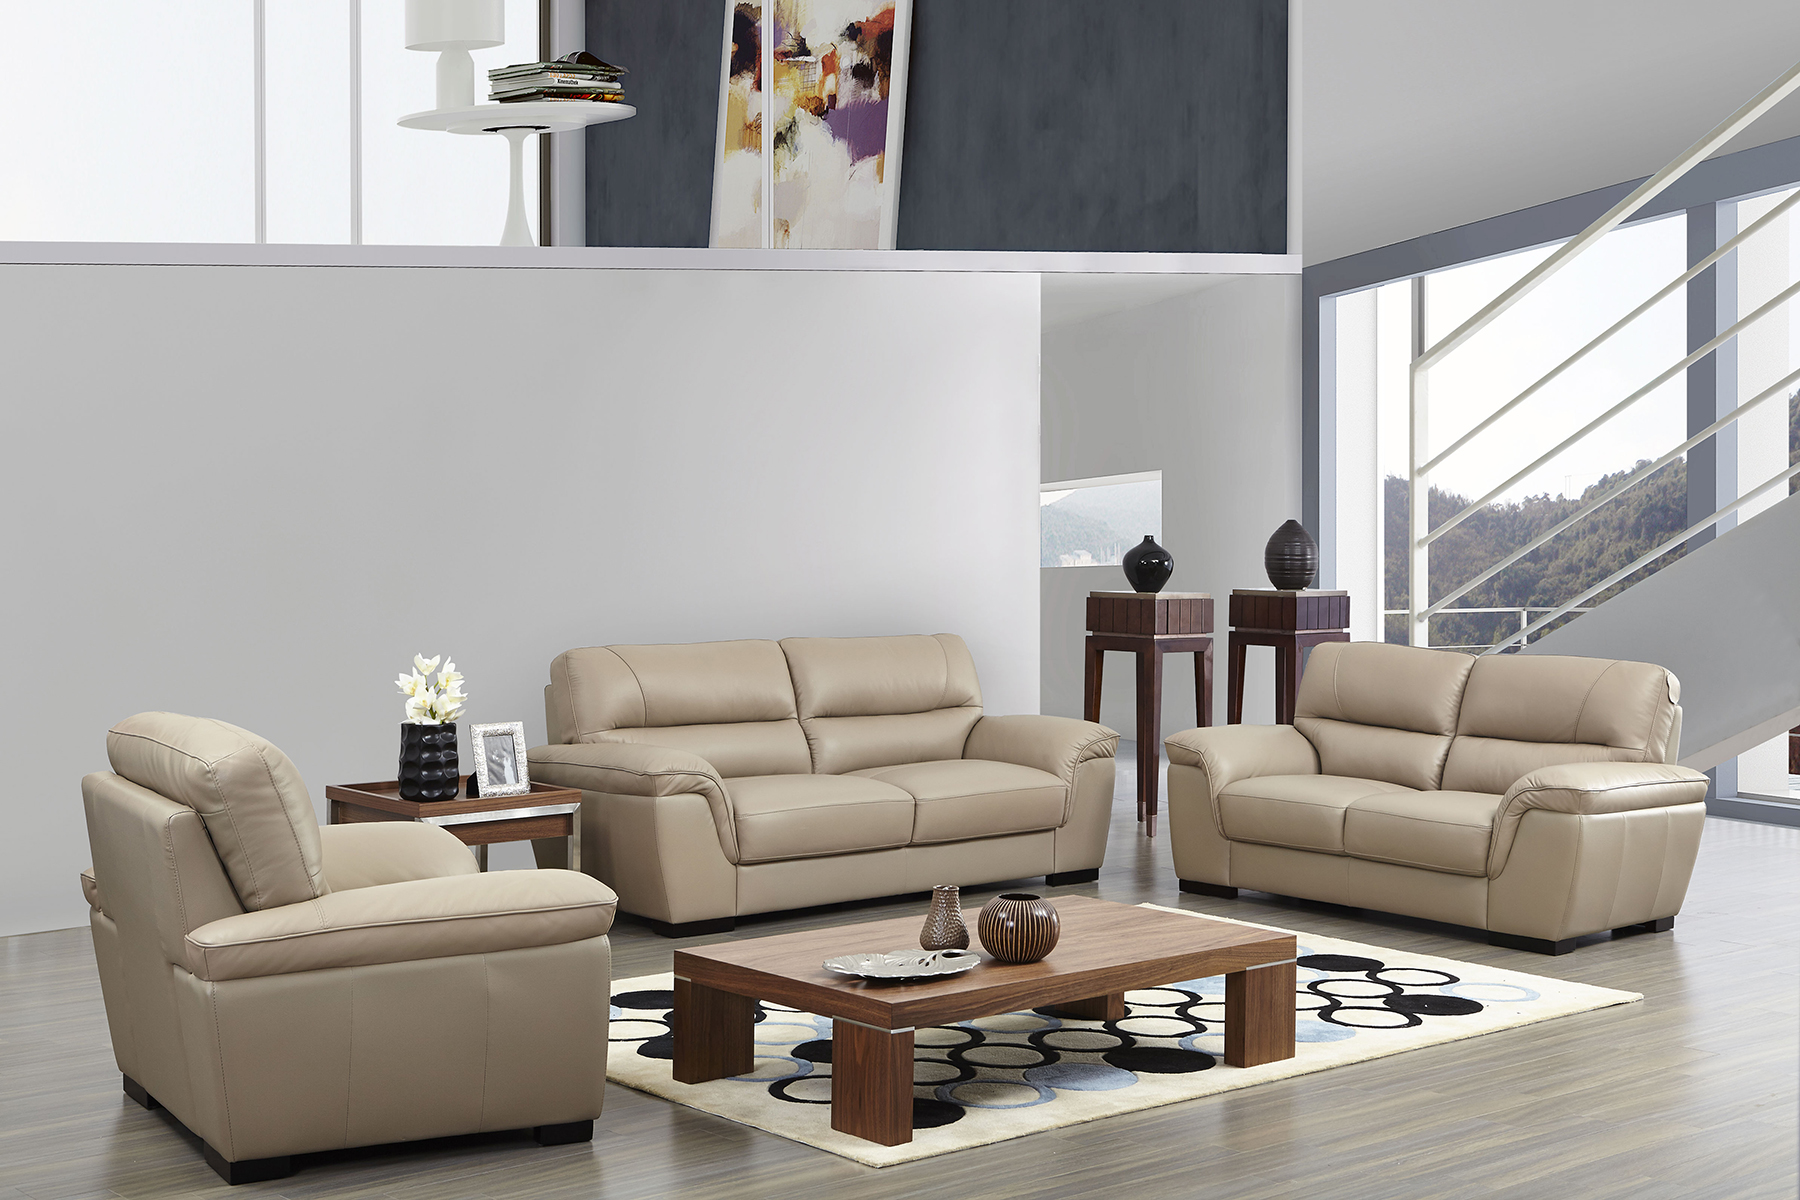 Leather Living Room Furnitures Contemporary Beige Leather Stylish Sofa Set With Wooden Legs